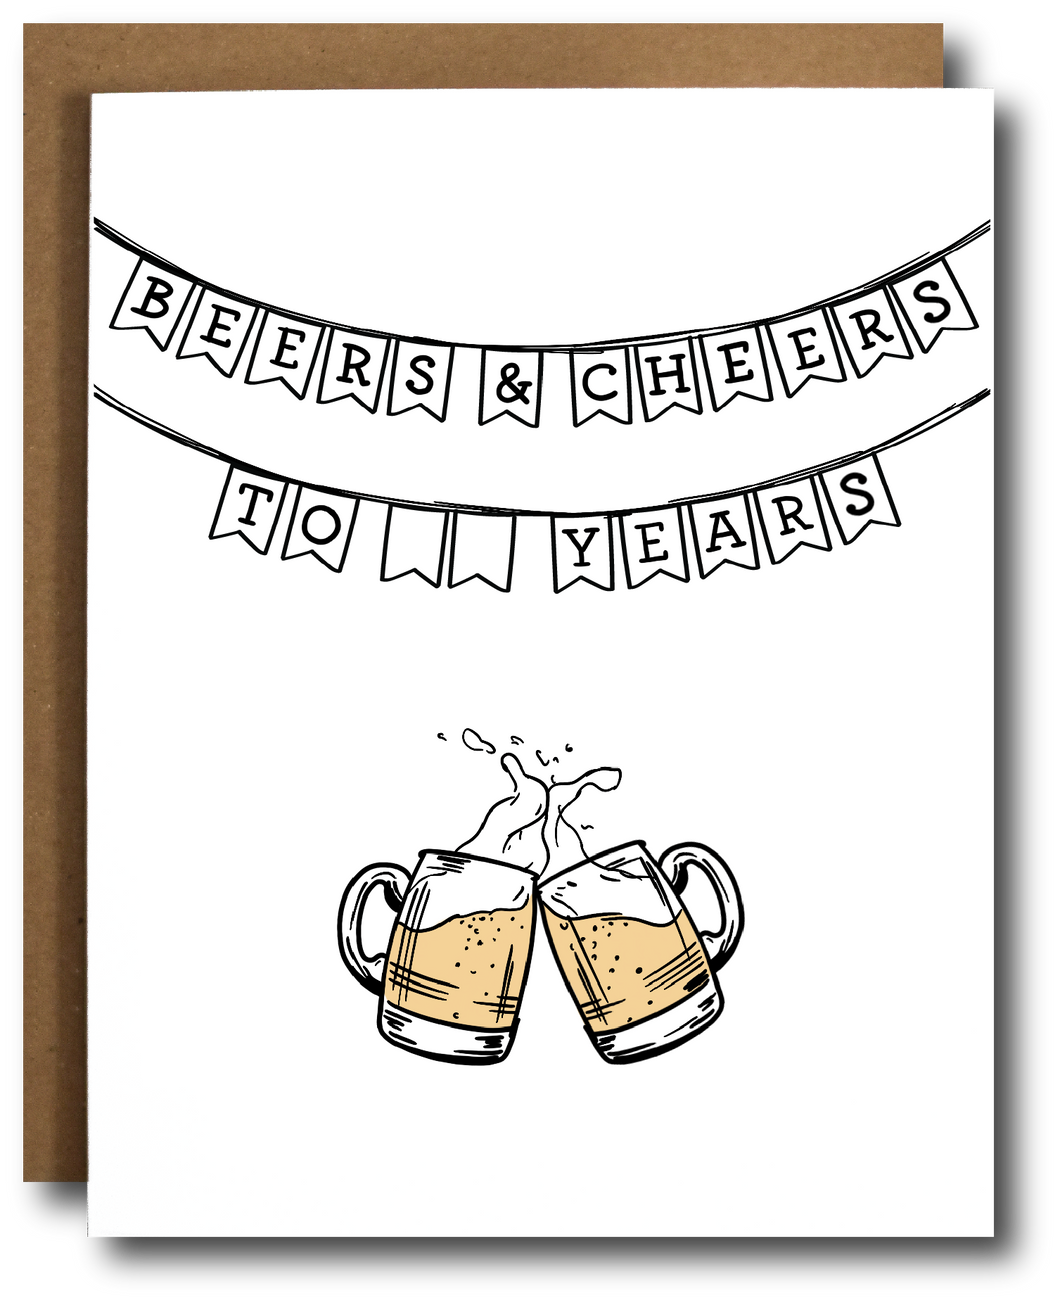 Beers & Cheers Celebration Card